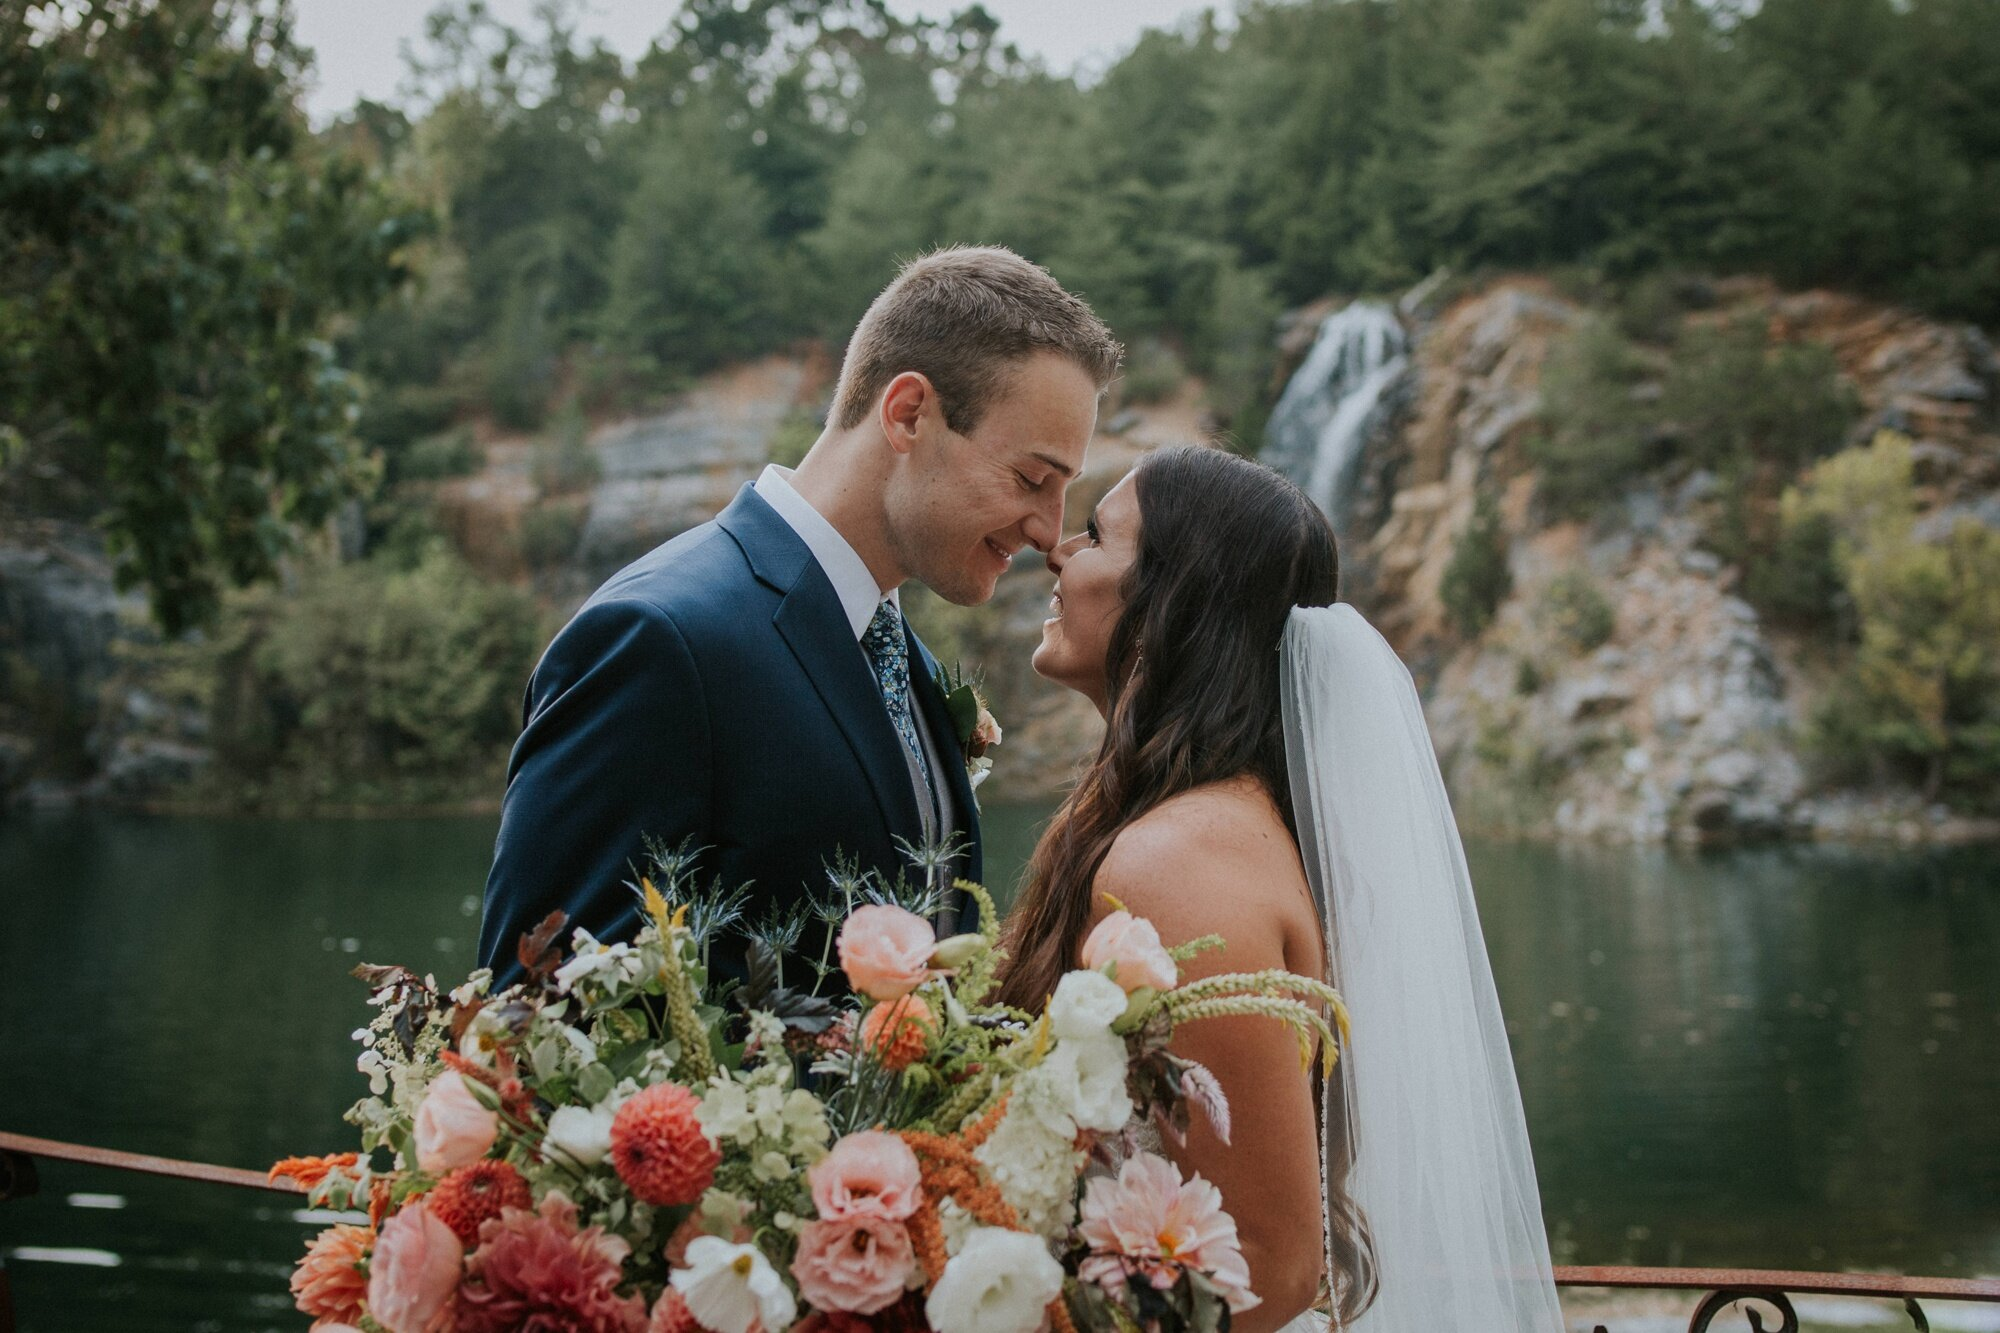 waterstone-venue-johnson-city-tennessee-rustic-adventurous-katy-sergent-asheville-knoxville-wedding-photography_0023.jpg